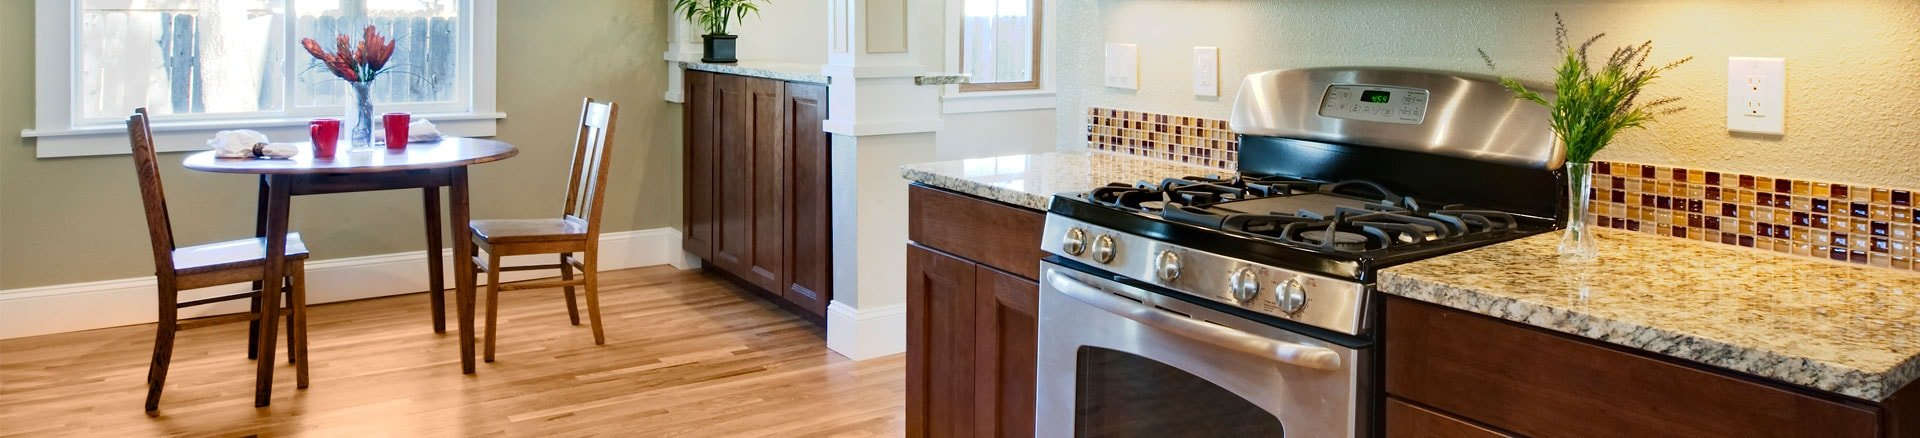 uncategorized win a free kitchen remodel wingsioskins